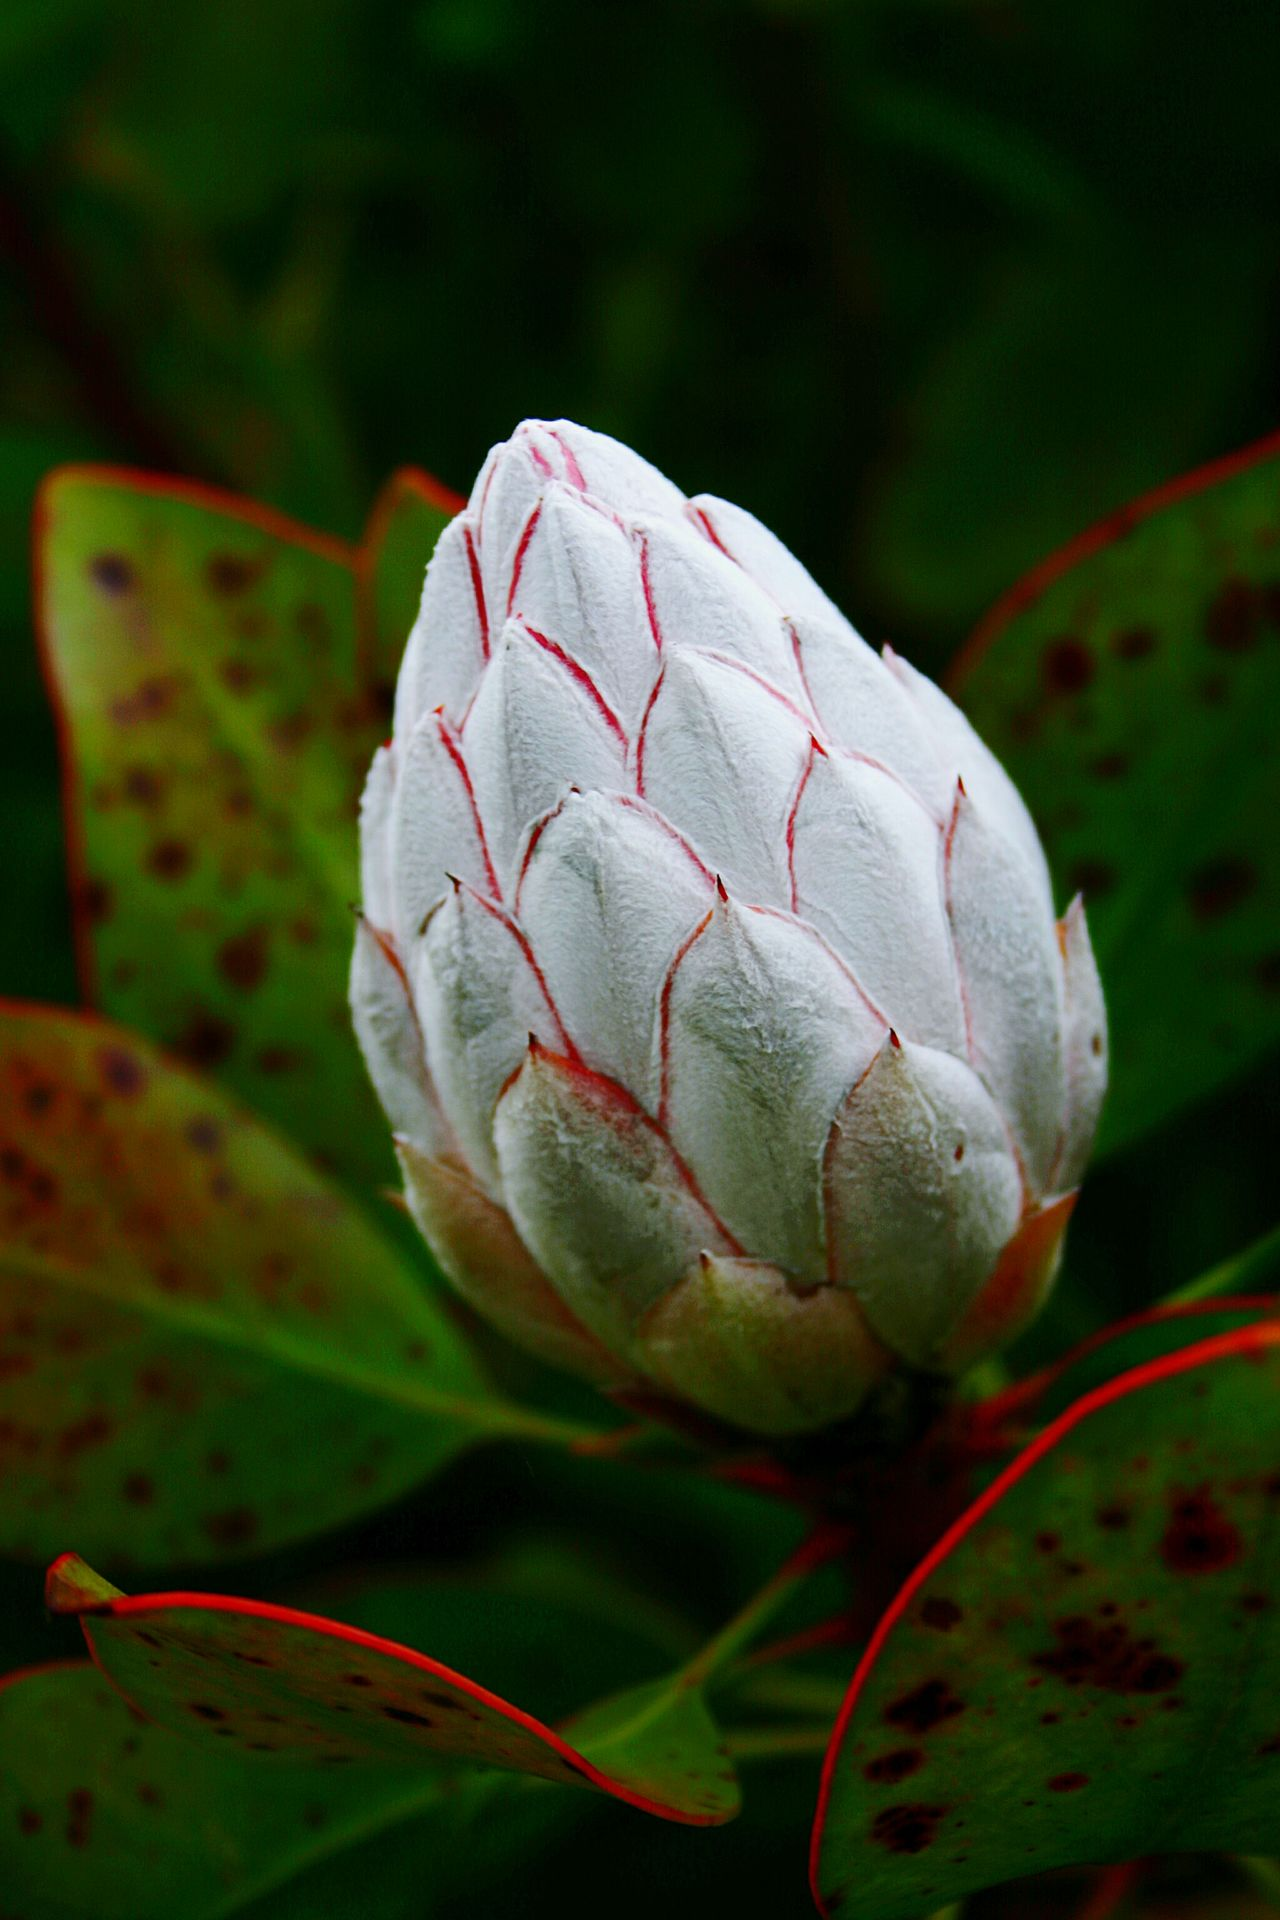 Close-up Plant Protea Flower Leaf Nature No People Outdoors Flower Beauty In Nature Green Leaves White Flower Budding Flower Colorful Tropical Plant